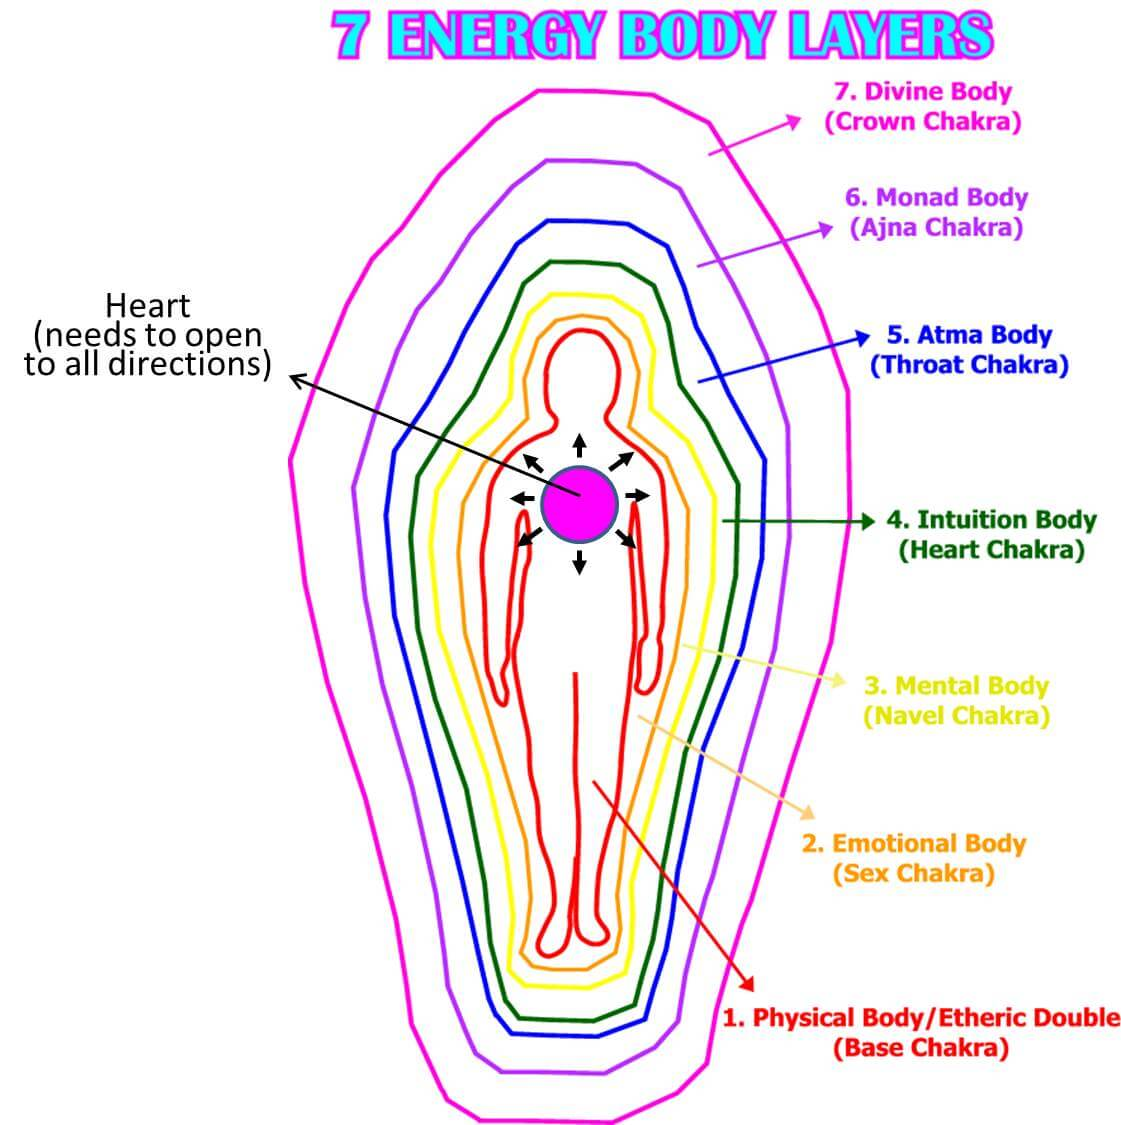 The 7 Energy Body Layers and Open Heart